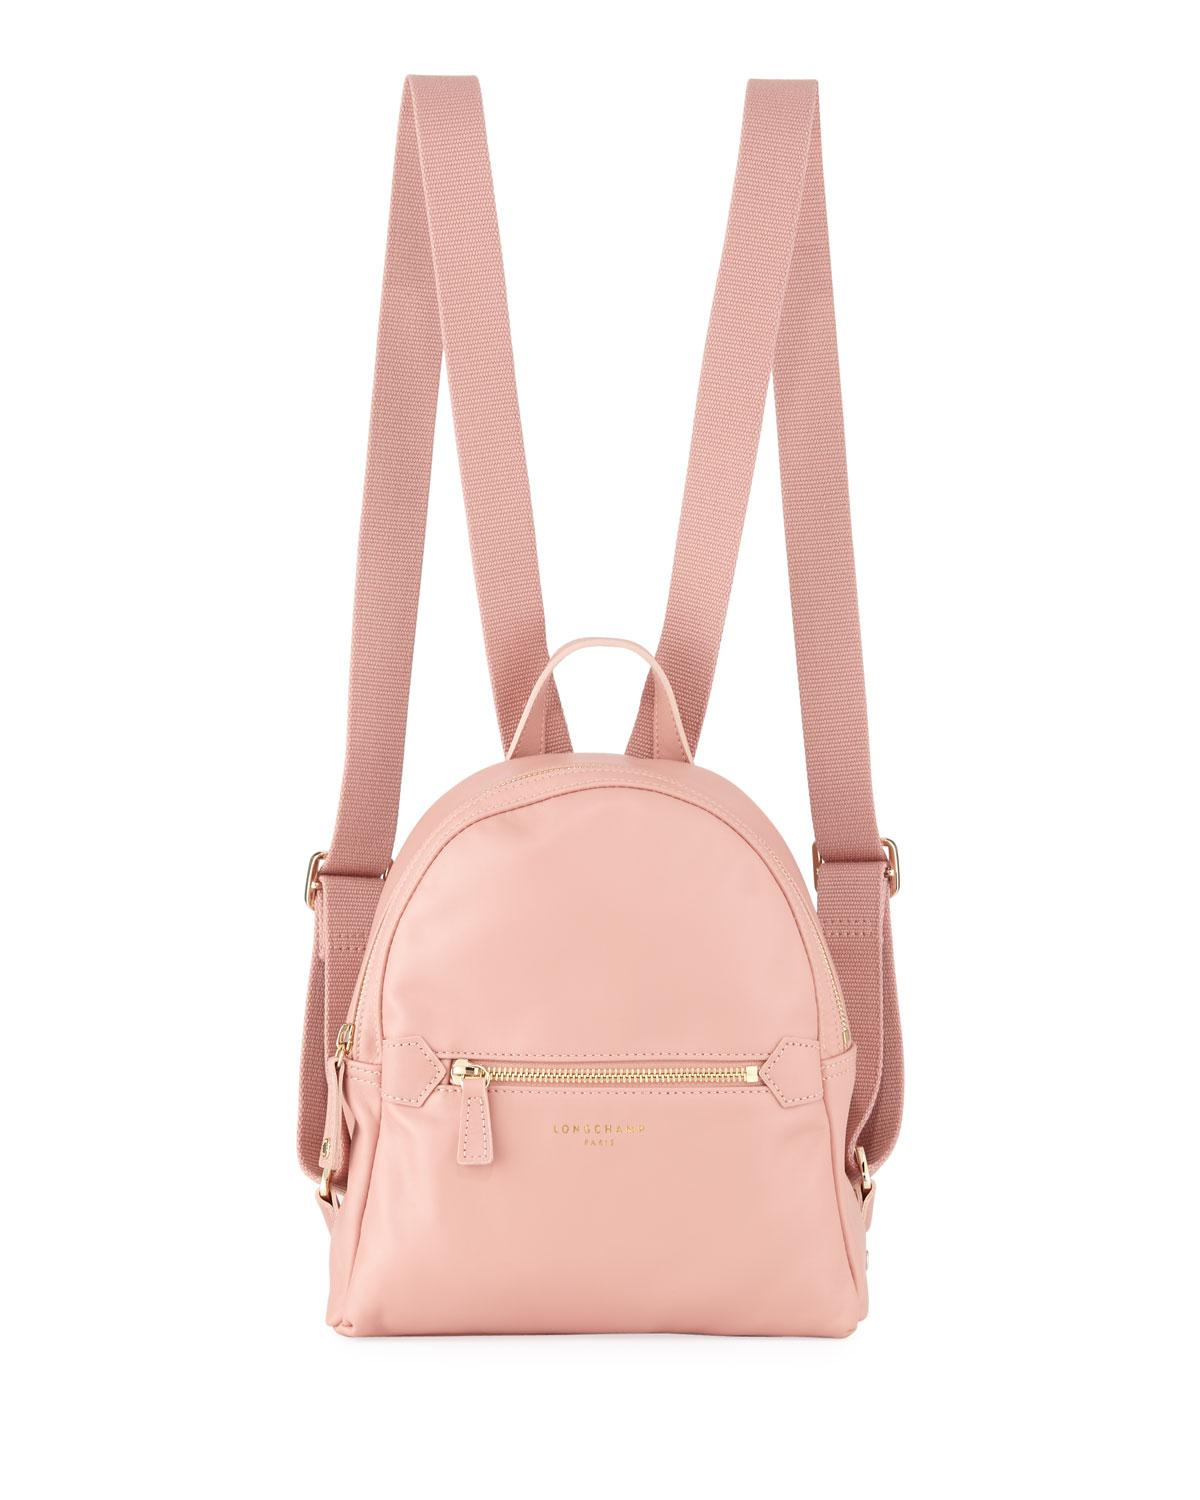 e9c681134fe3 Lyst - Longchamp 2.0 Small Leather Backpack Bag in Pink - Save 14%